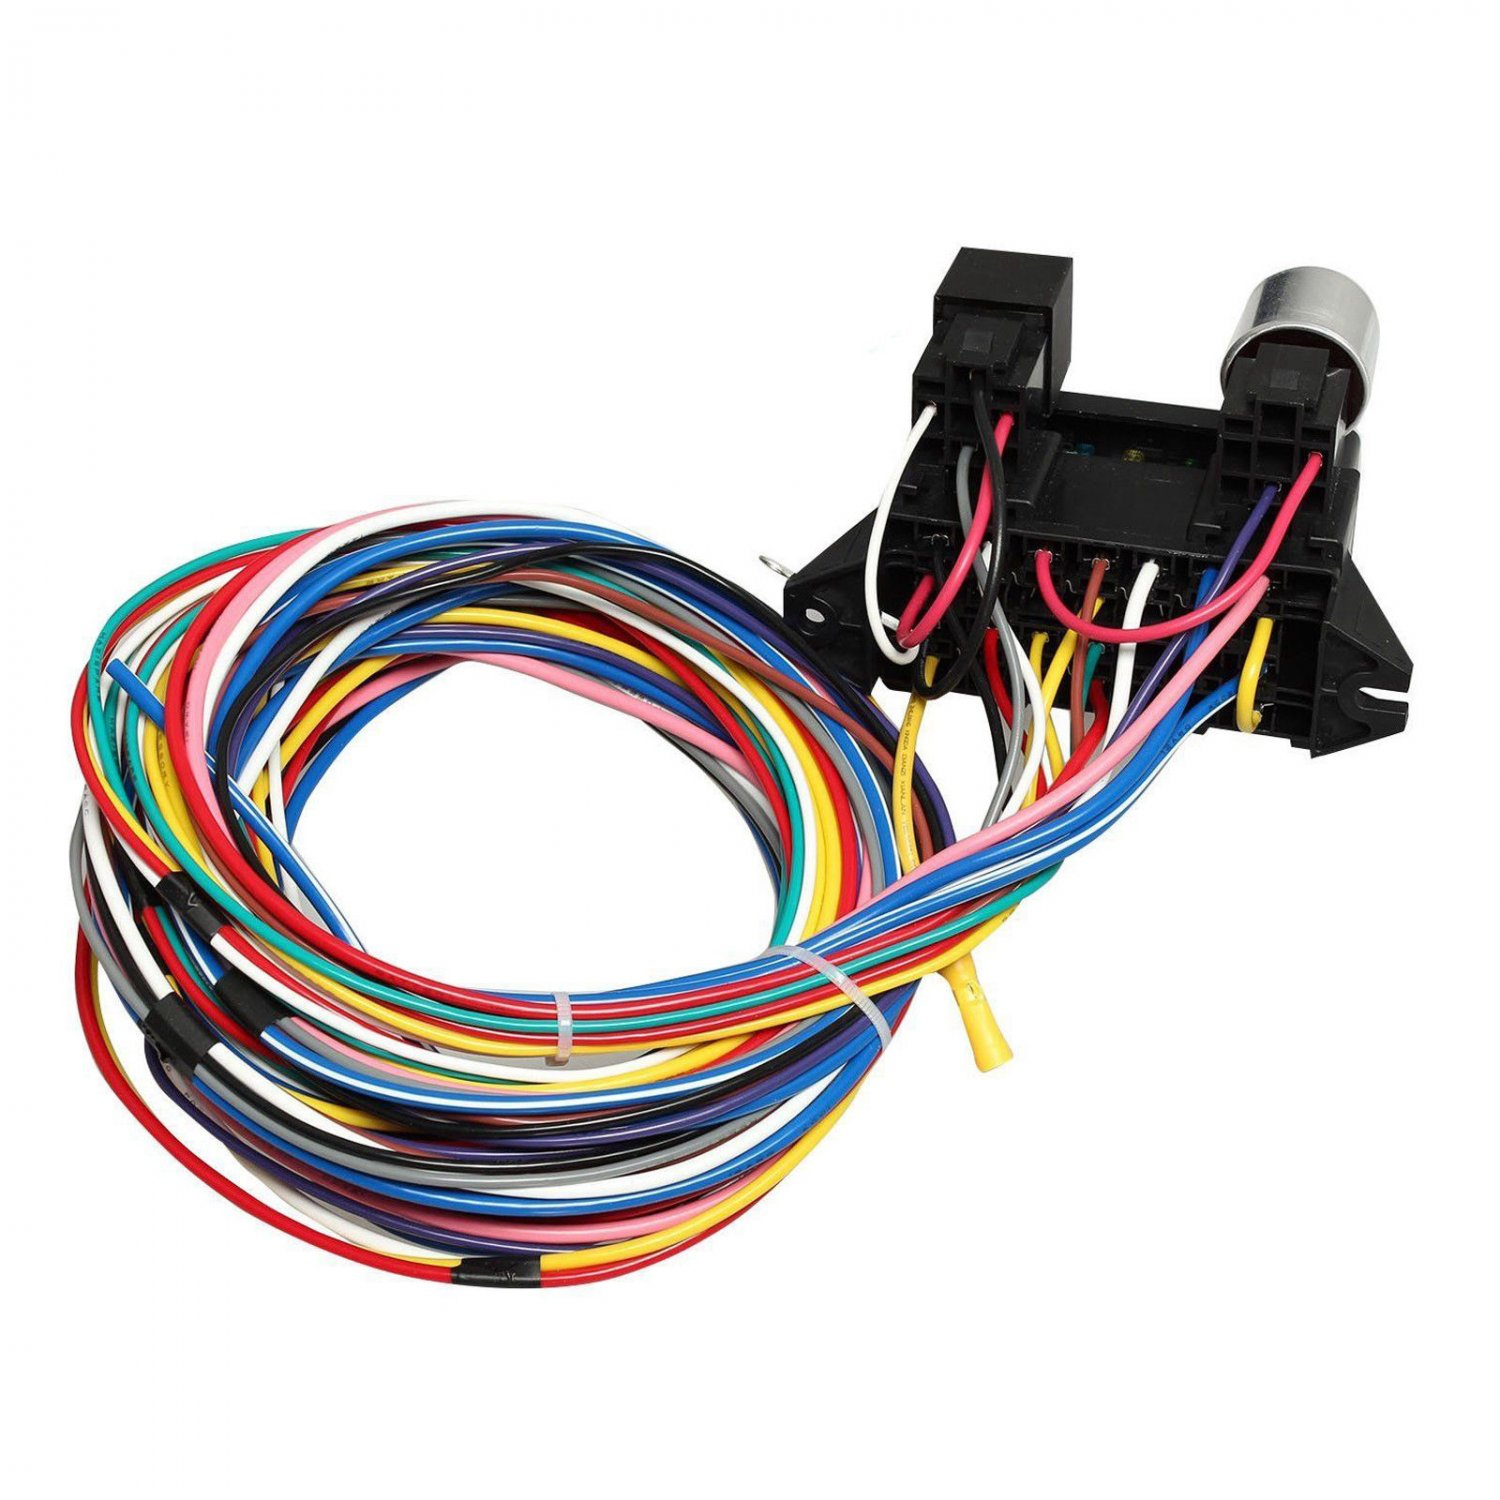 hight resolution of new 12 circuit wire harness muscle car hot rod street rod xl wires ez wiring 12